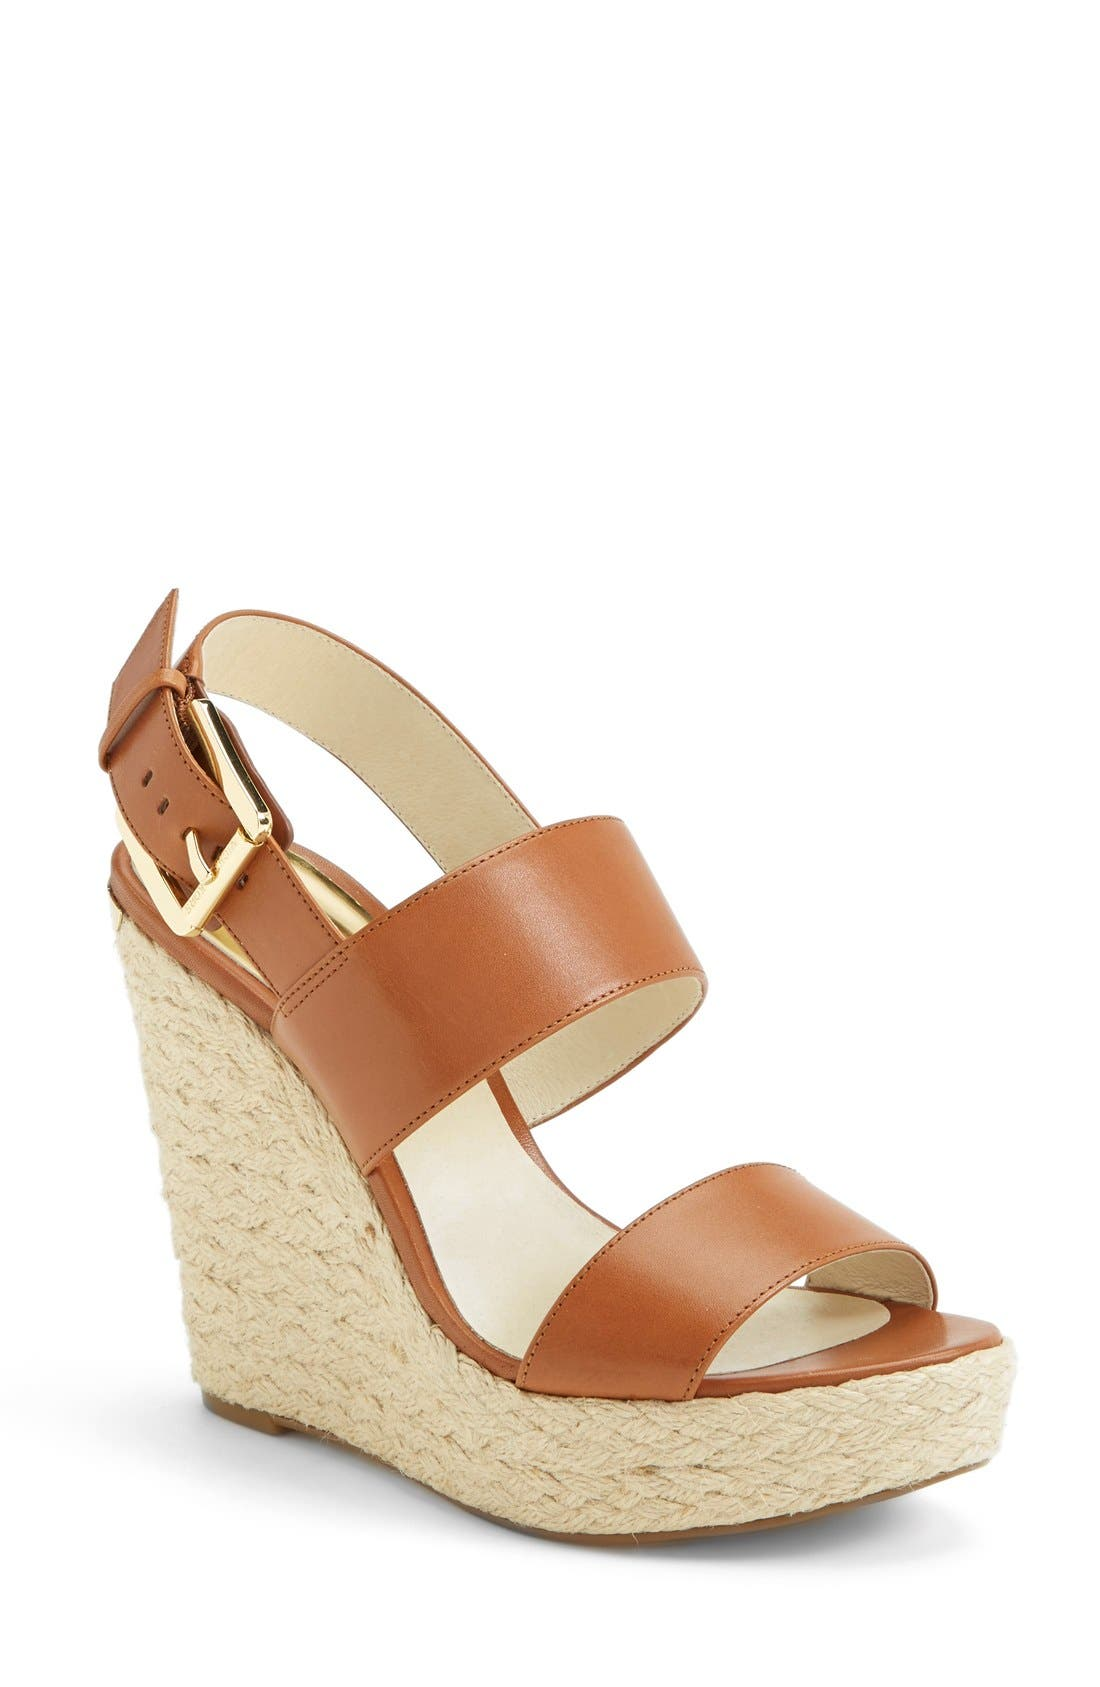 'Posey' Espadrille Wedge Sandal,                             Main thumbnail 1, color,                             Luggage